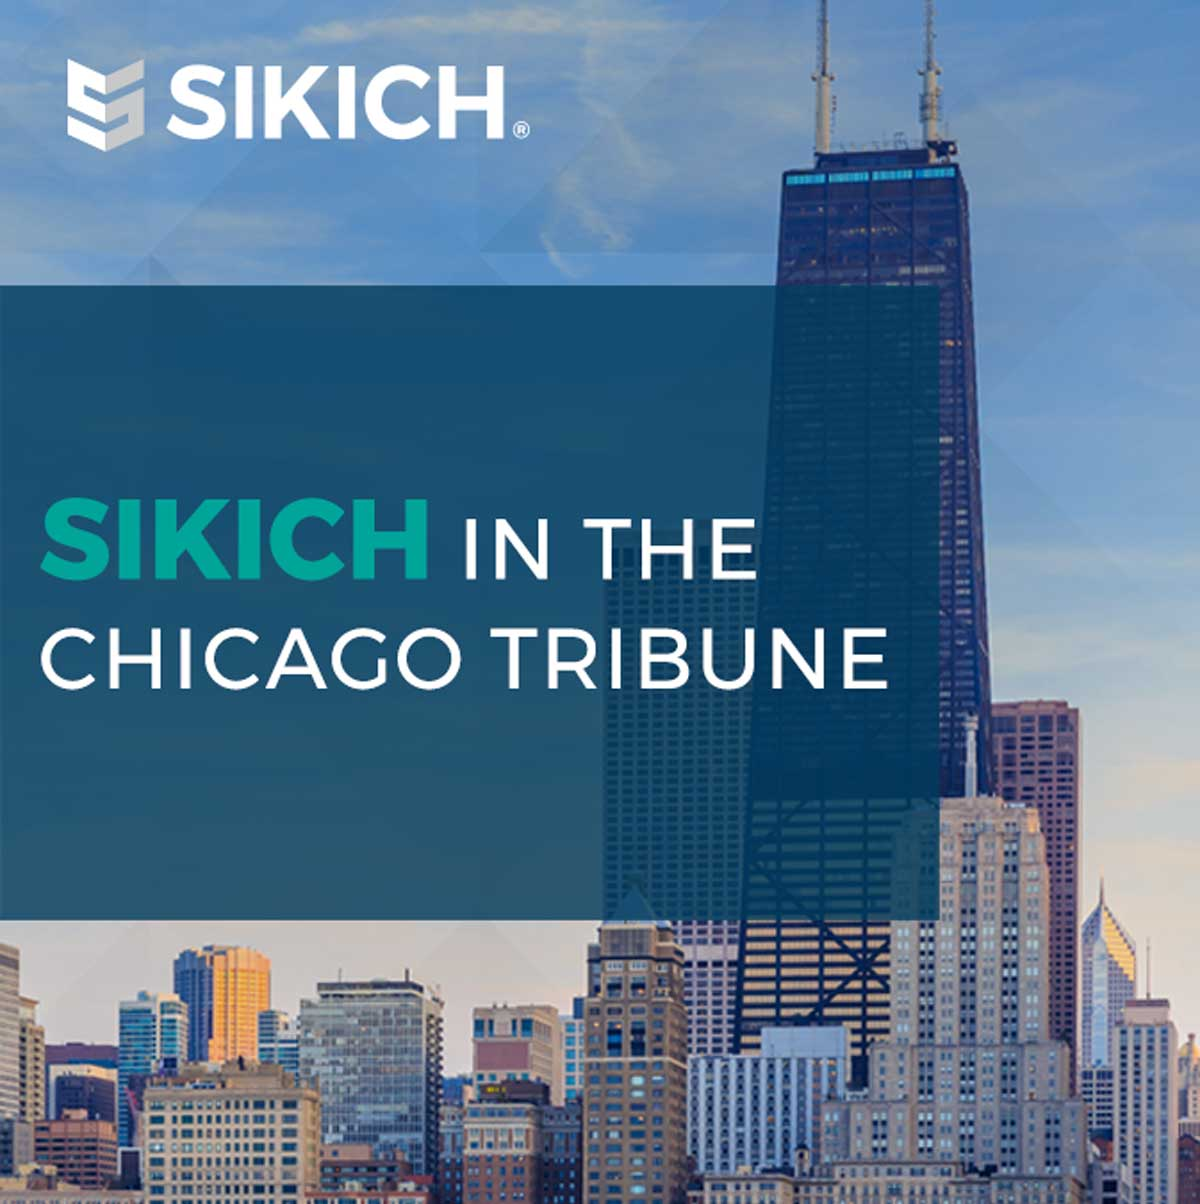 Sikich-Chicago-Tribune-feature-image